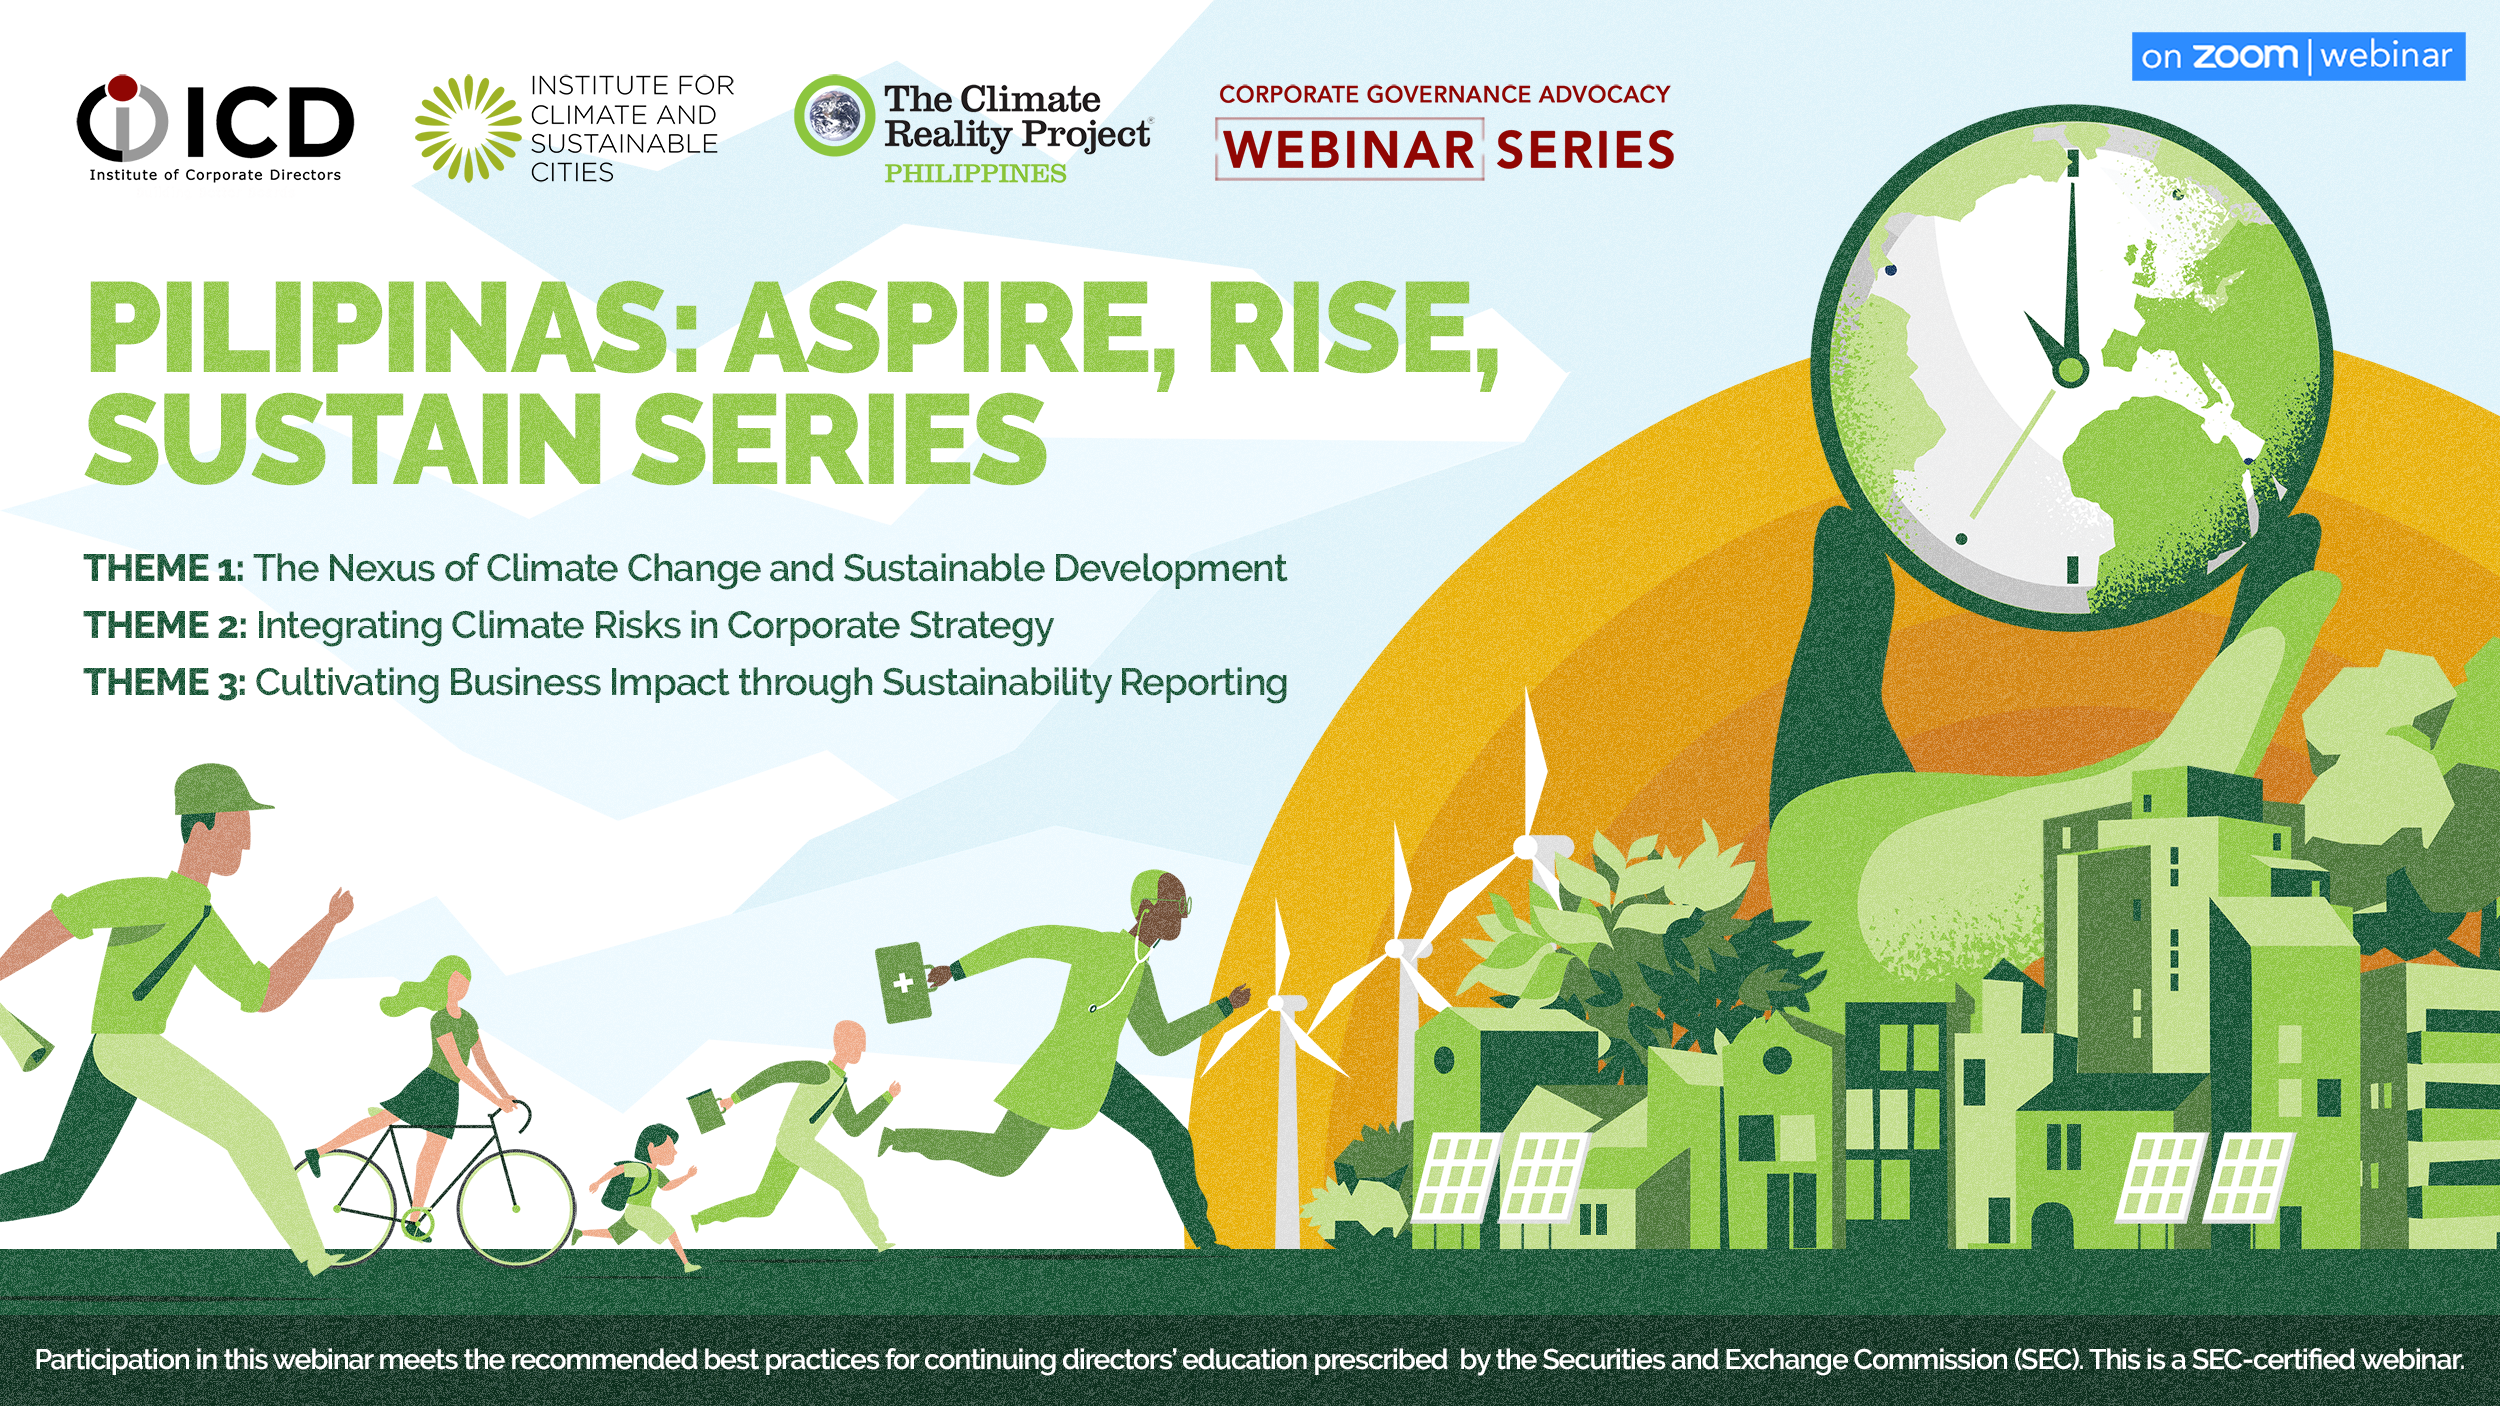 Private sector pushes for sustainability: ICD to hold webinars with ICSC, Climate Reality PH